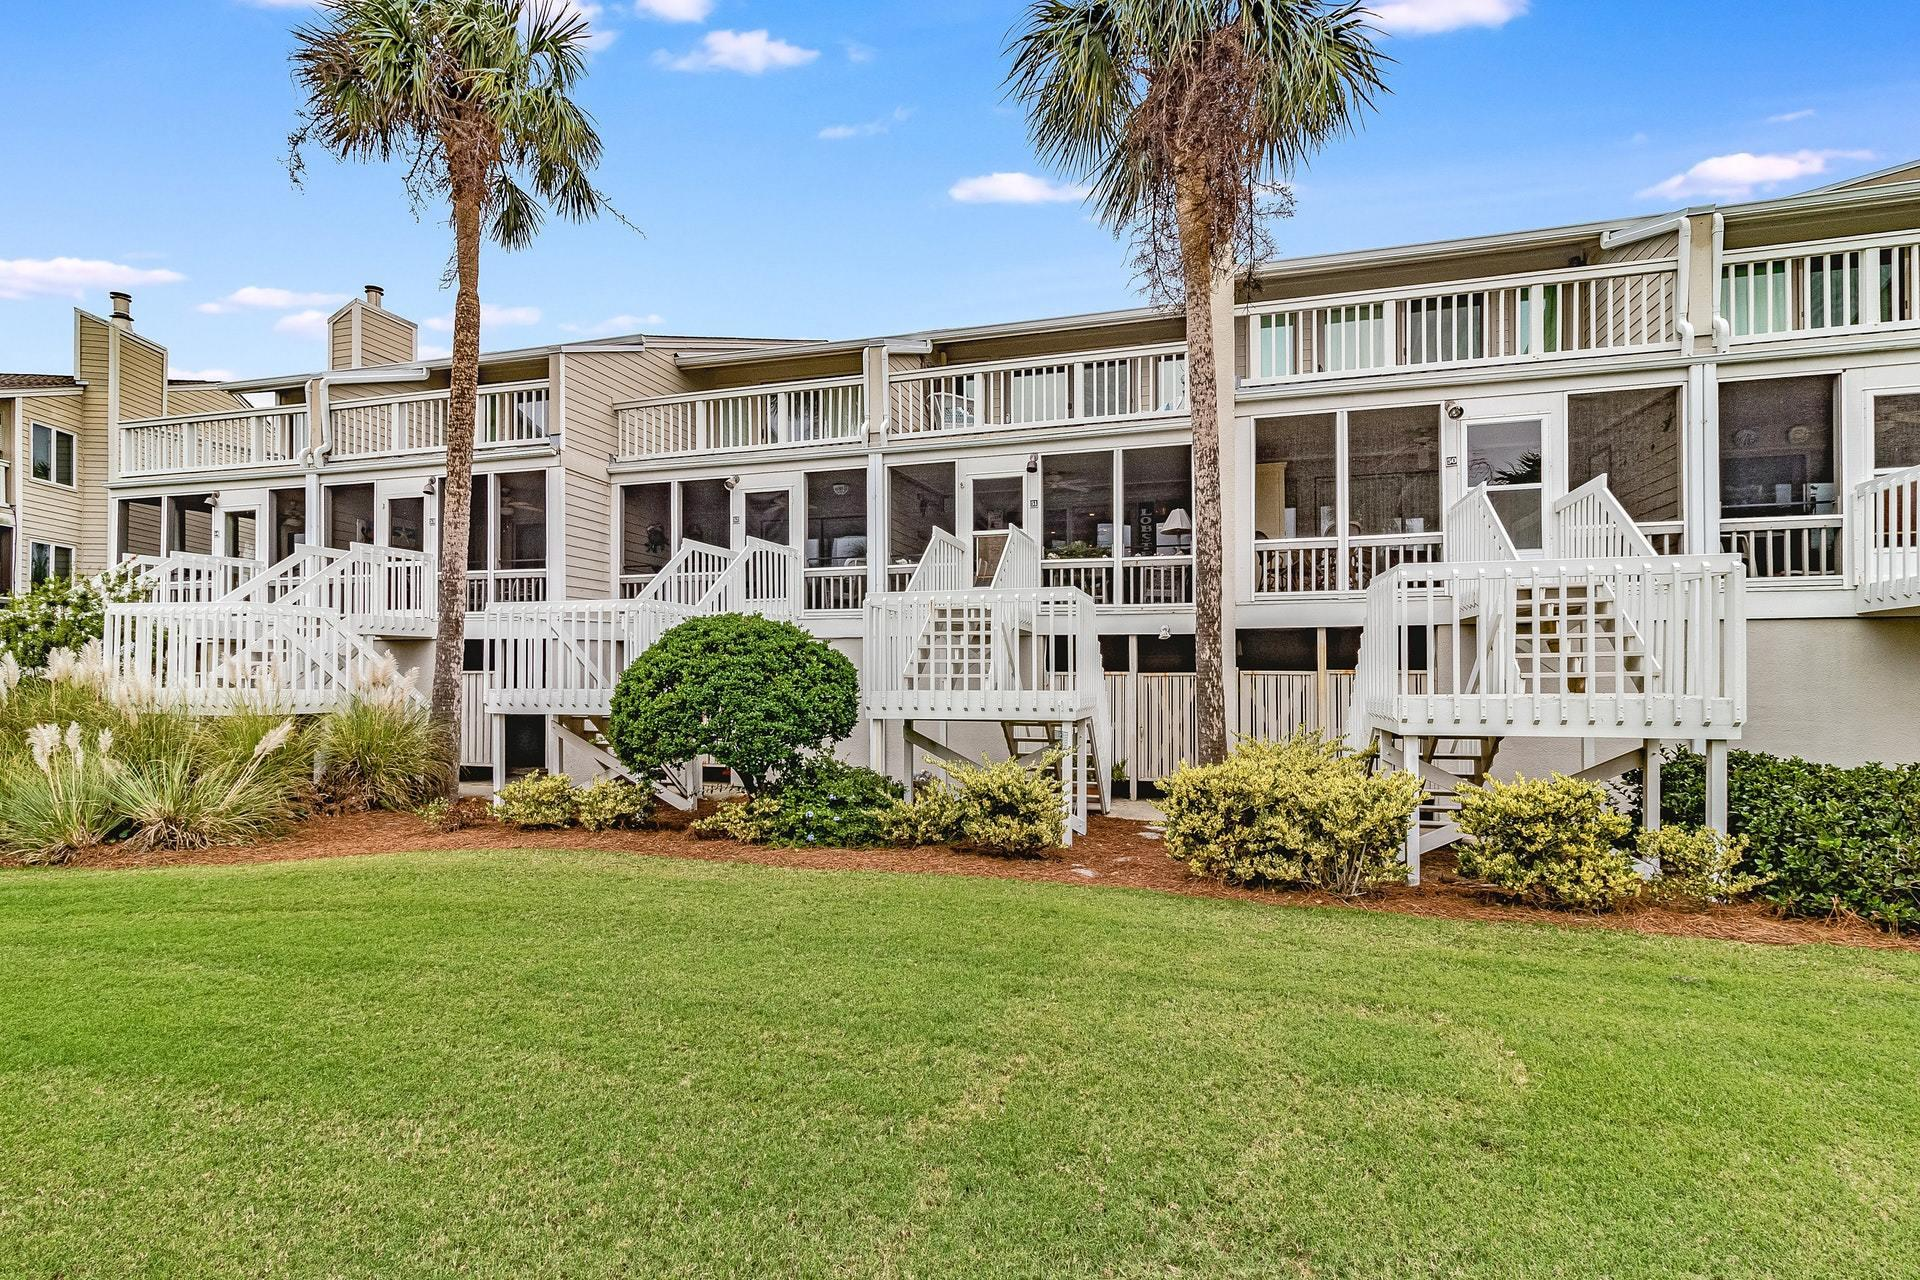 Beach Club Villas Homes For Sale - 51 Beach Club Villas, Isle of Palms, SC - 30